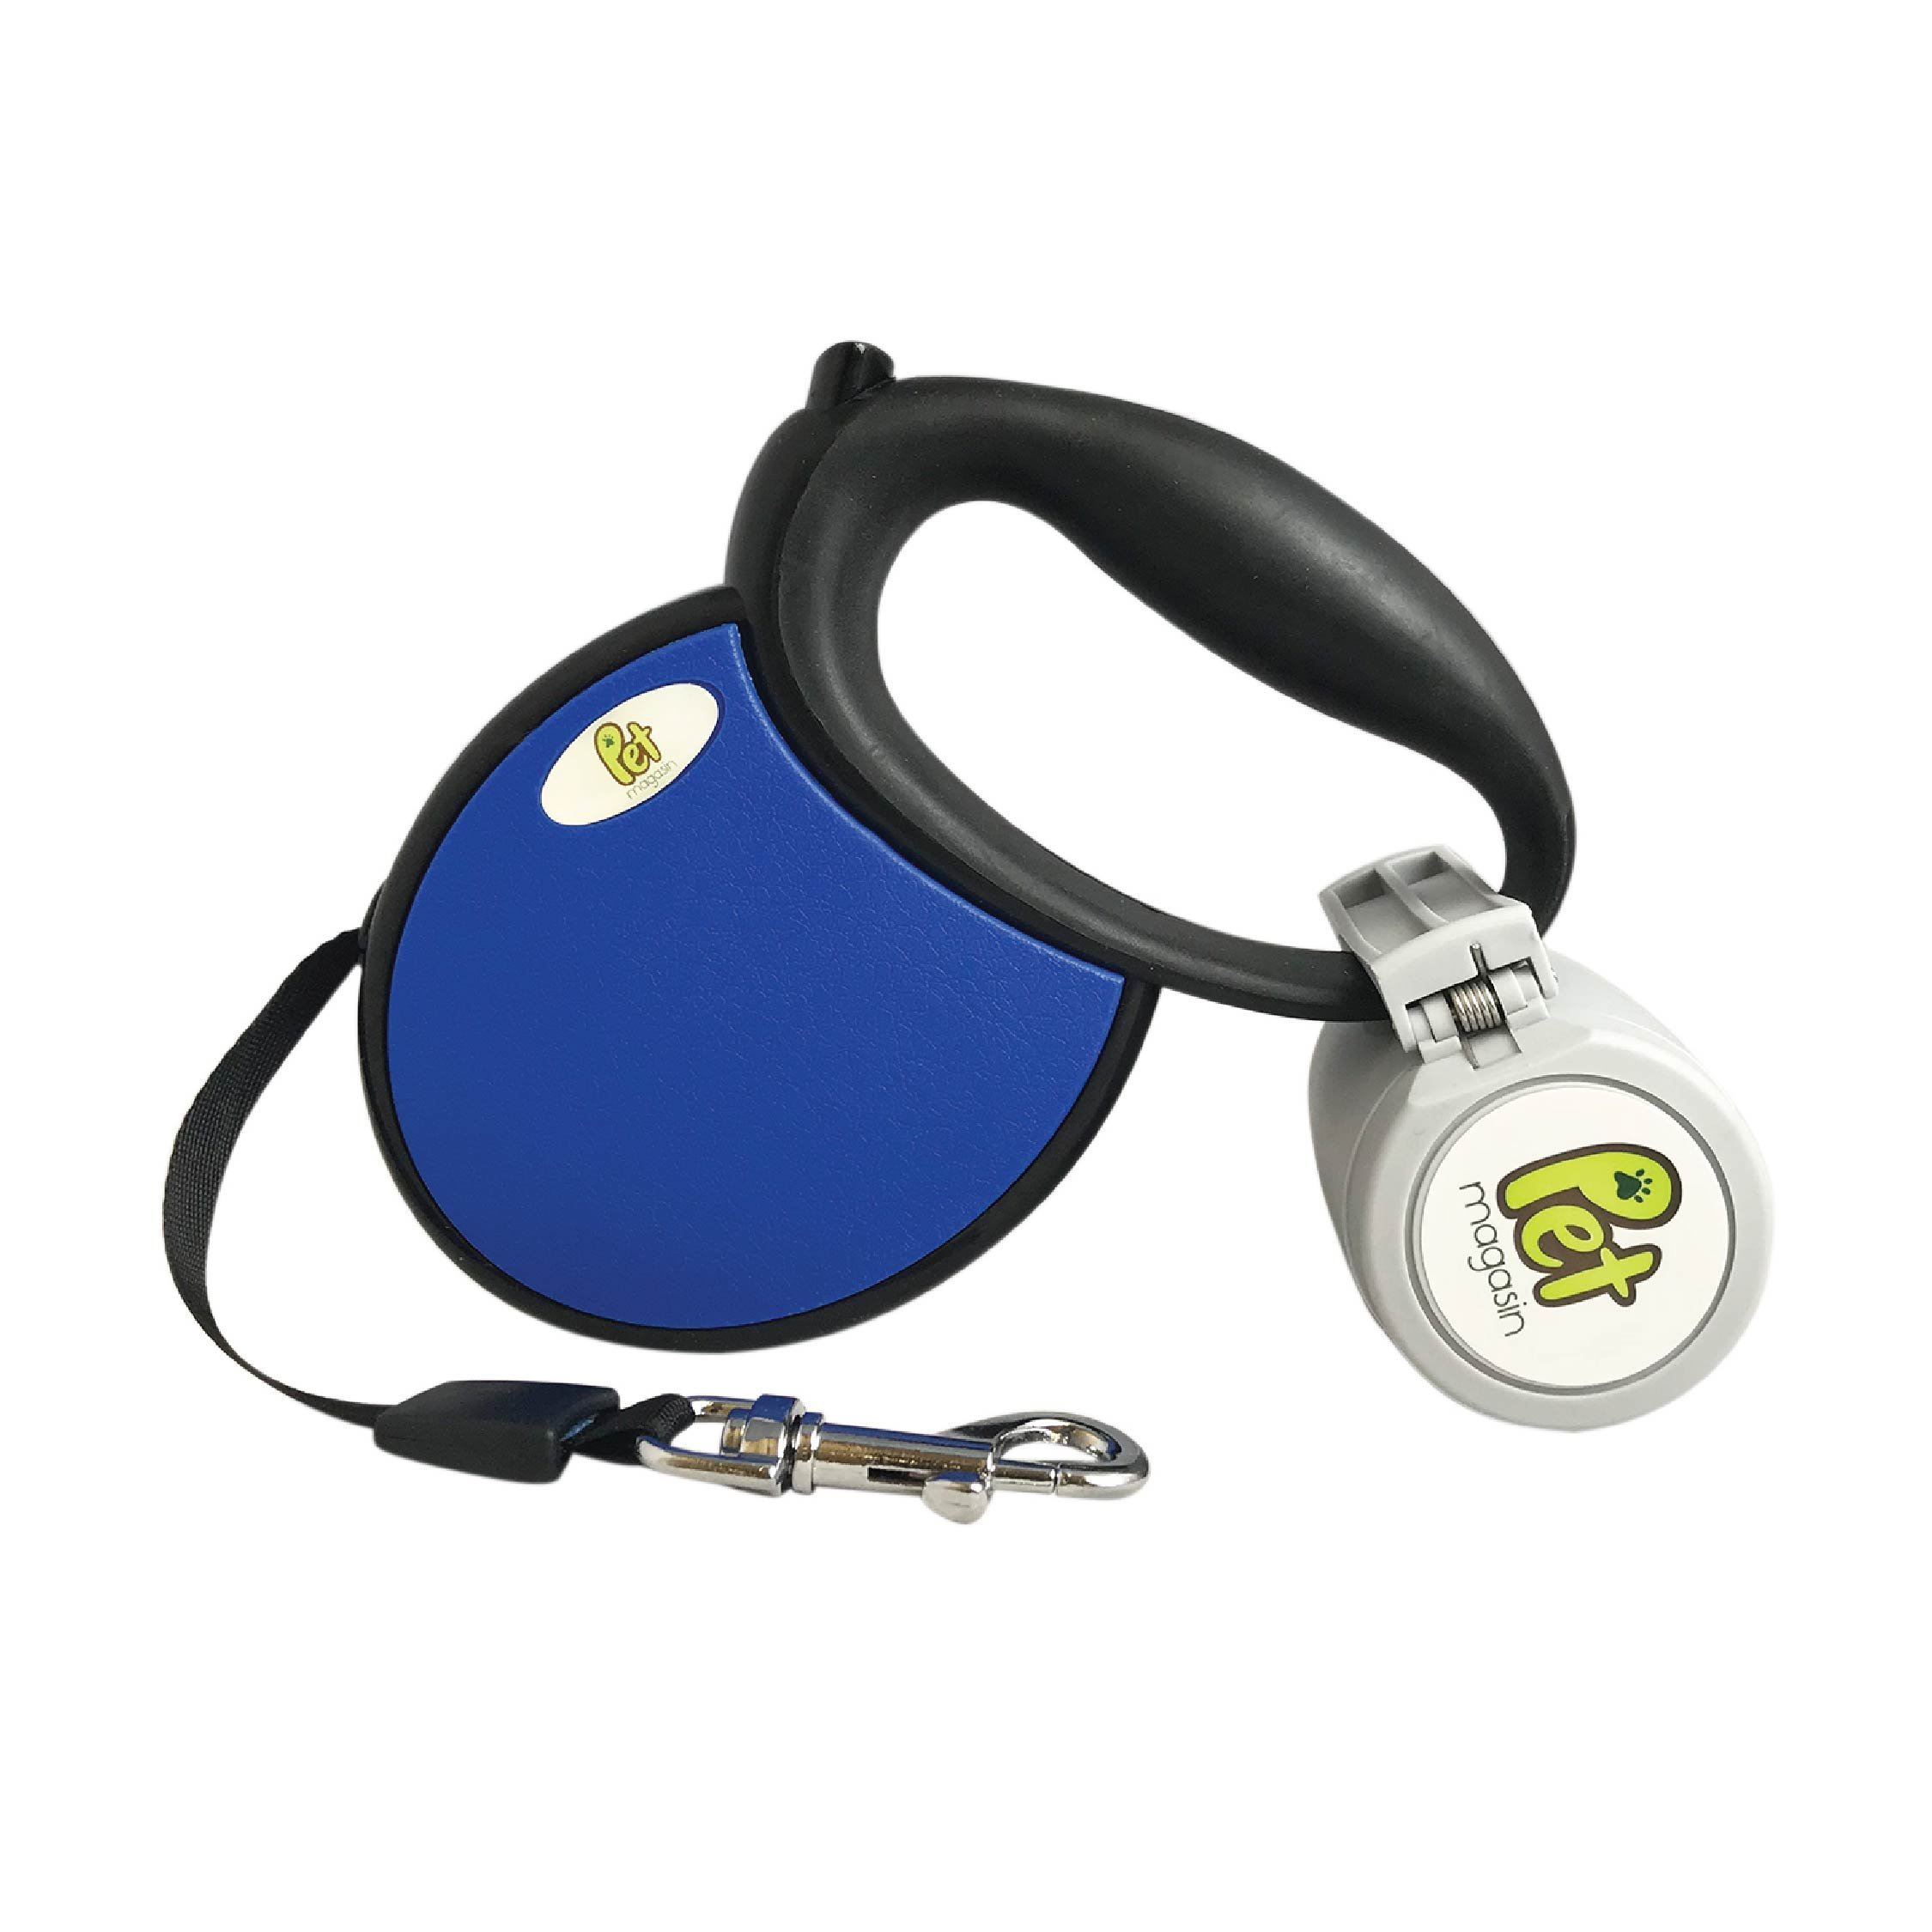 Pet Magasin Tangle-Free Retractable Dog Leash with Reflective Belt & Poop Bag Holder by